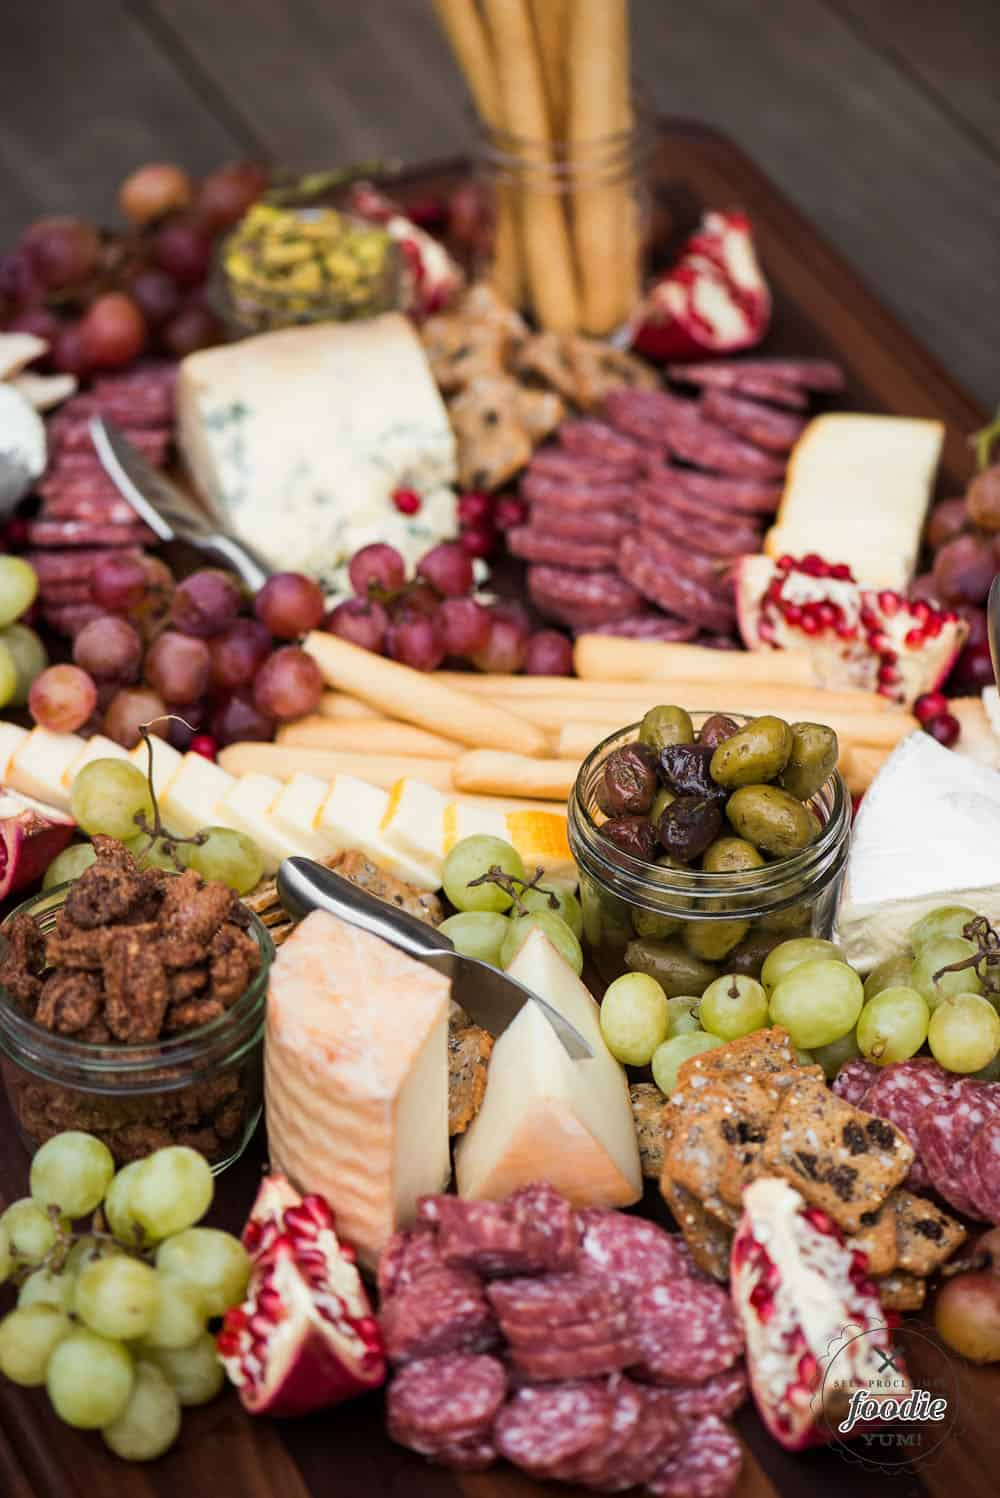 How to Put Together the Ultimate Meat & Cheese Board